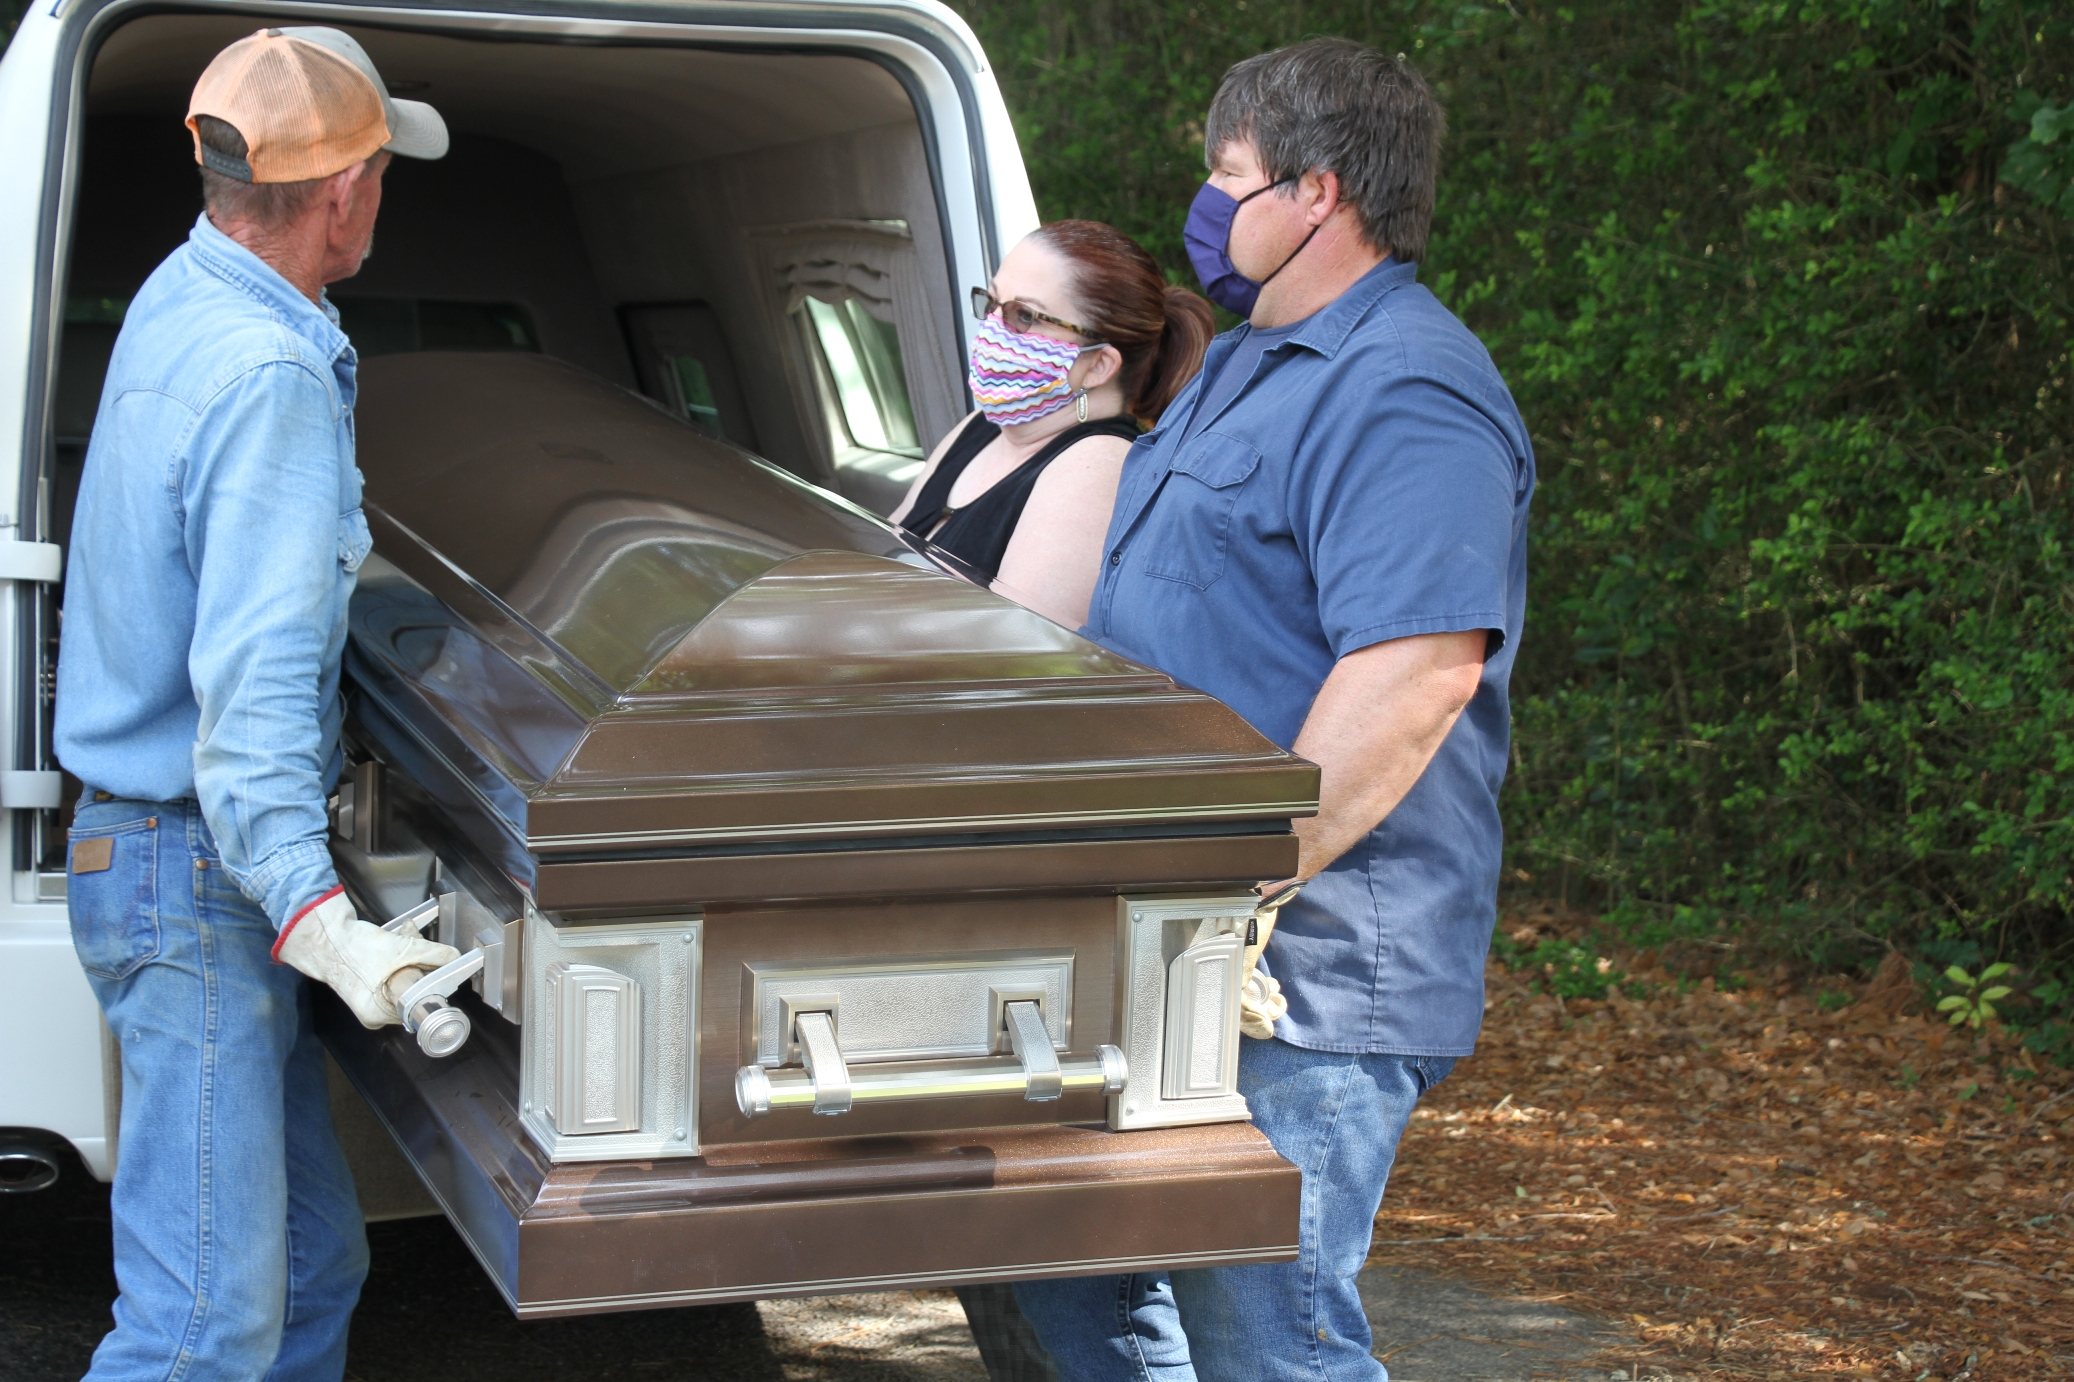 Local funeral homes adapting to pandemic challenges | Bluebonnet News